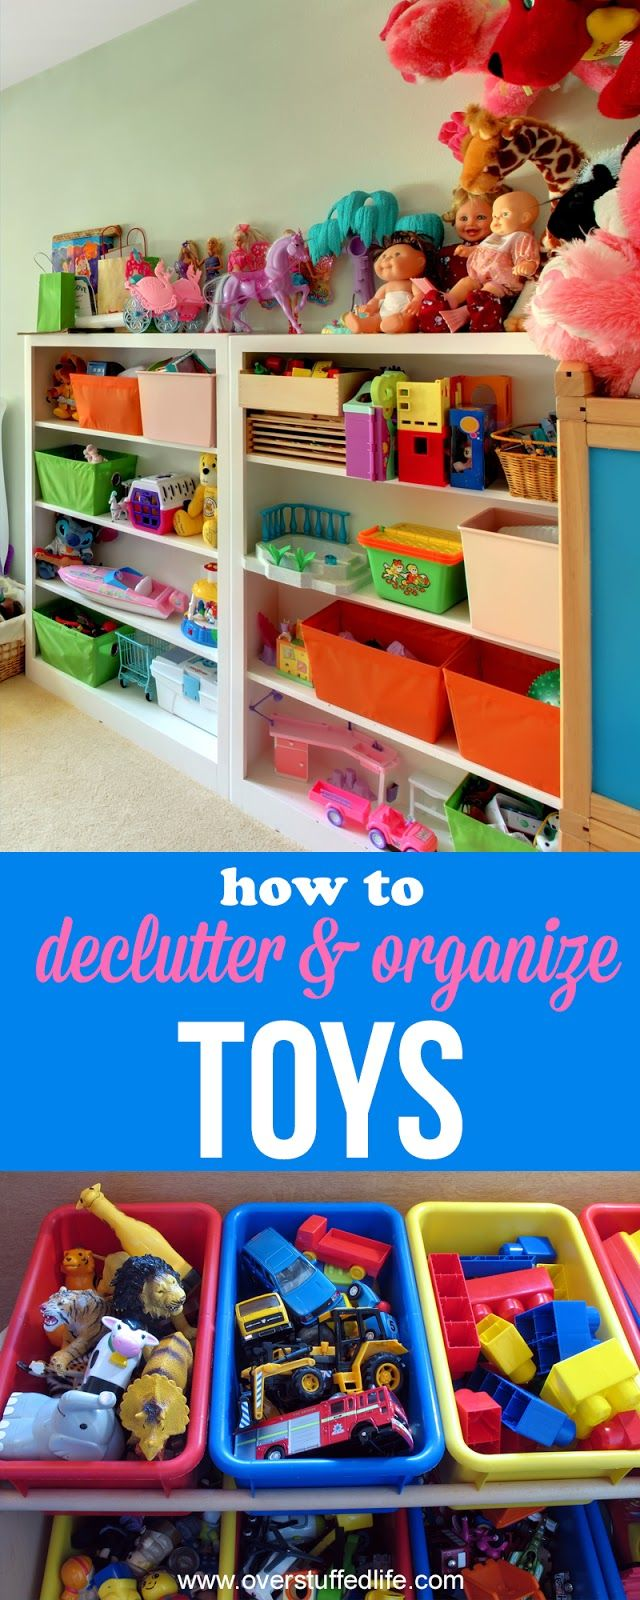 1000 Ideas About Toy Storage On Pinterest Storage Diy Toy Storage And Playrooms